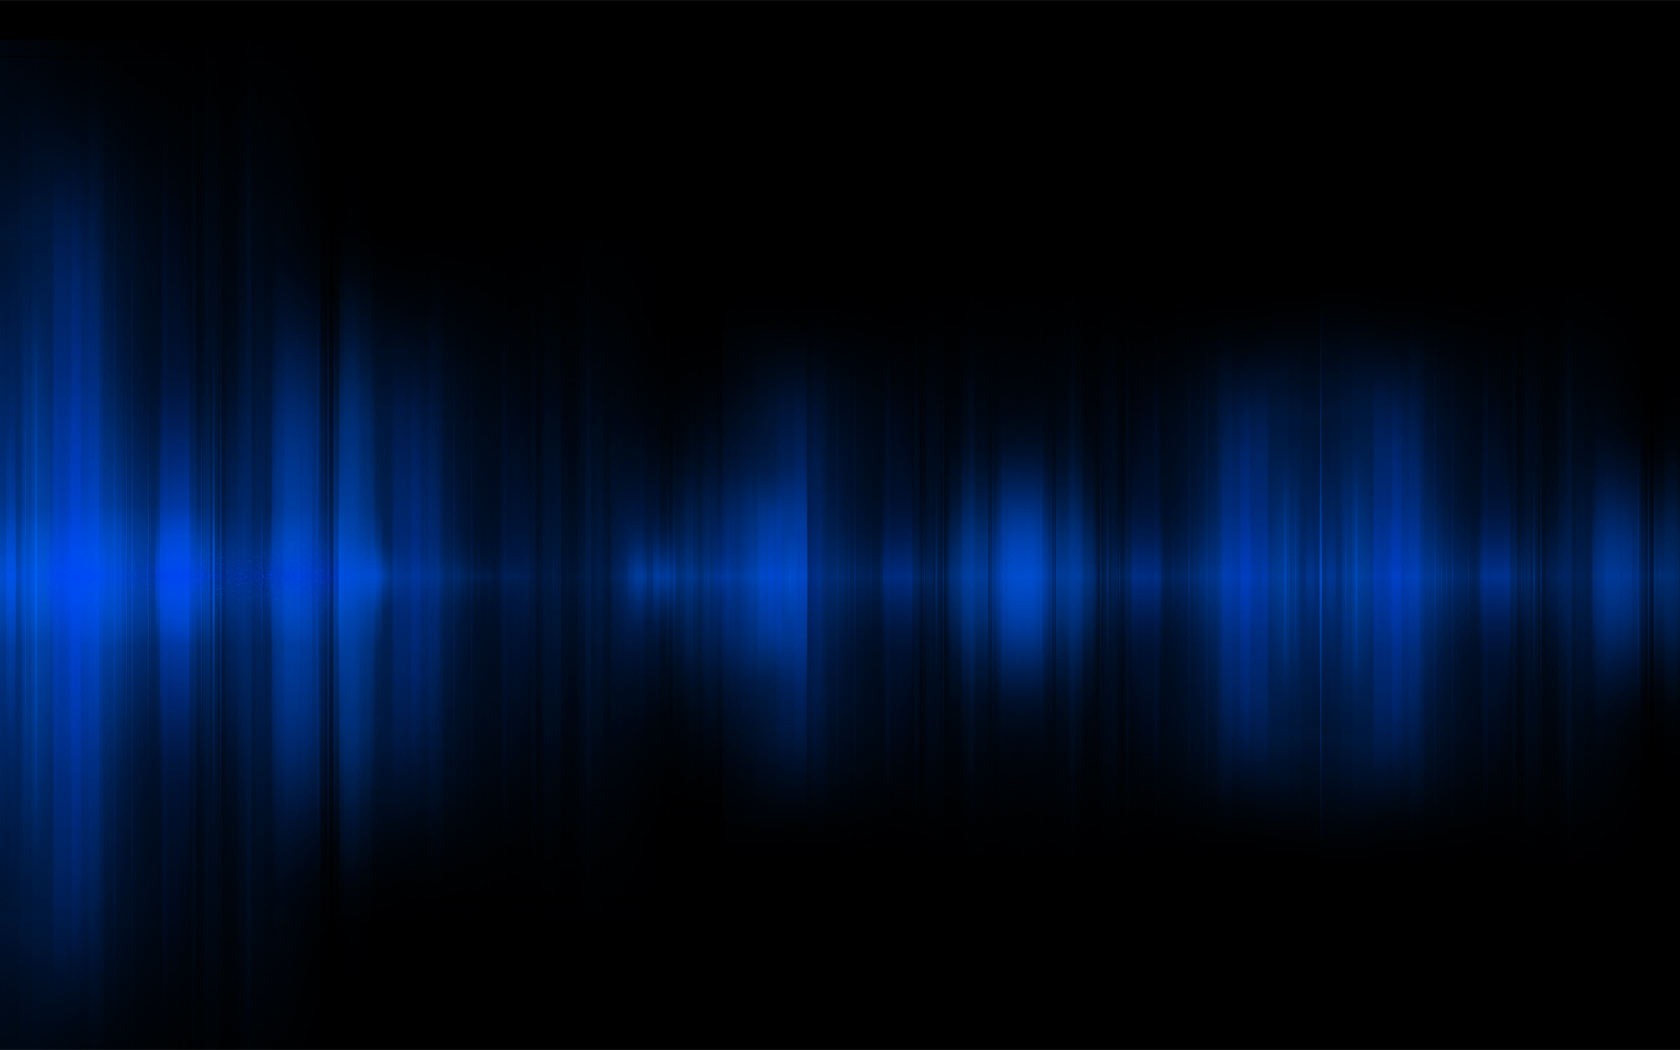 Wallpapers Hd Abstract Black And Blue: Black And Blue HD Wallpaper